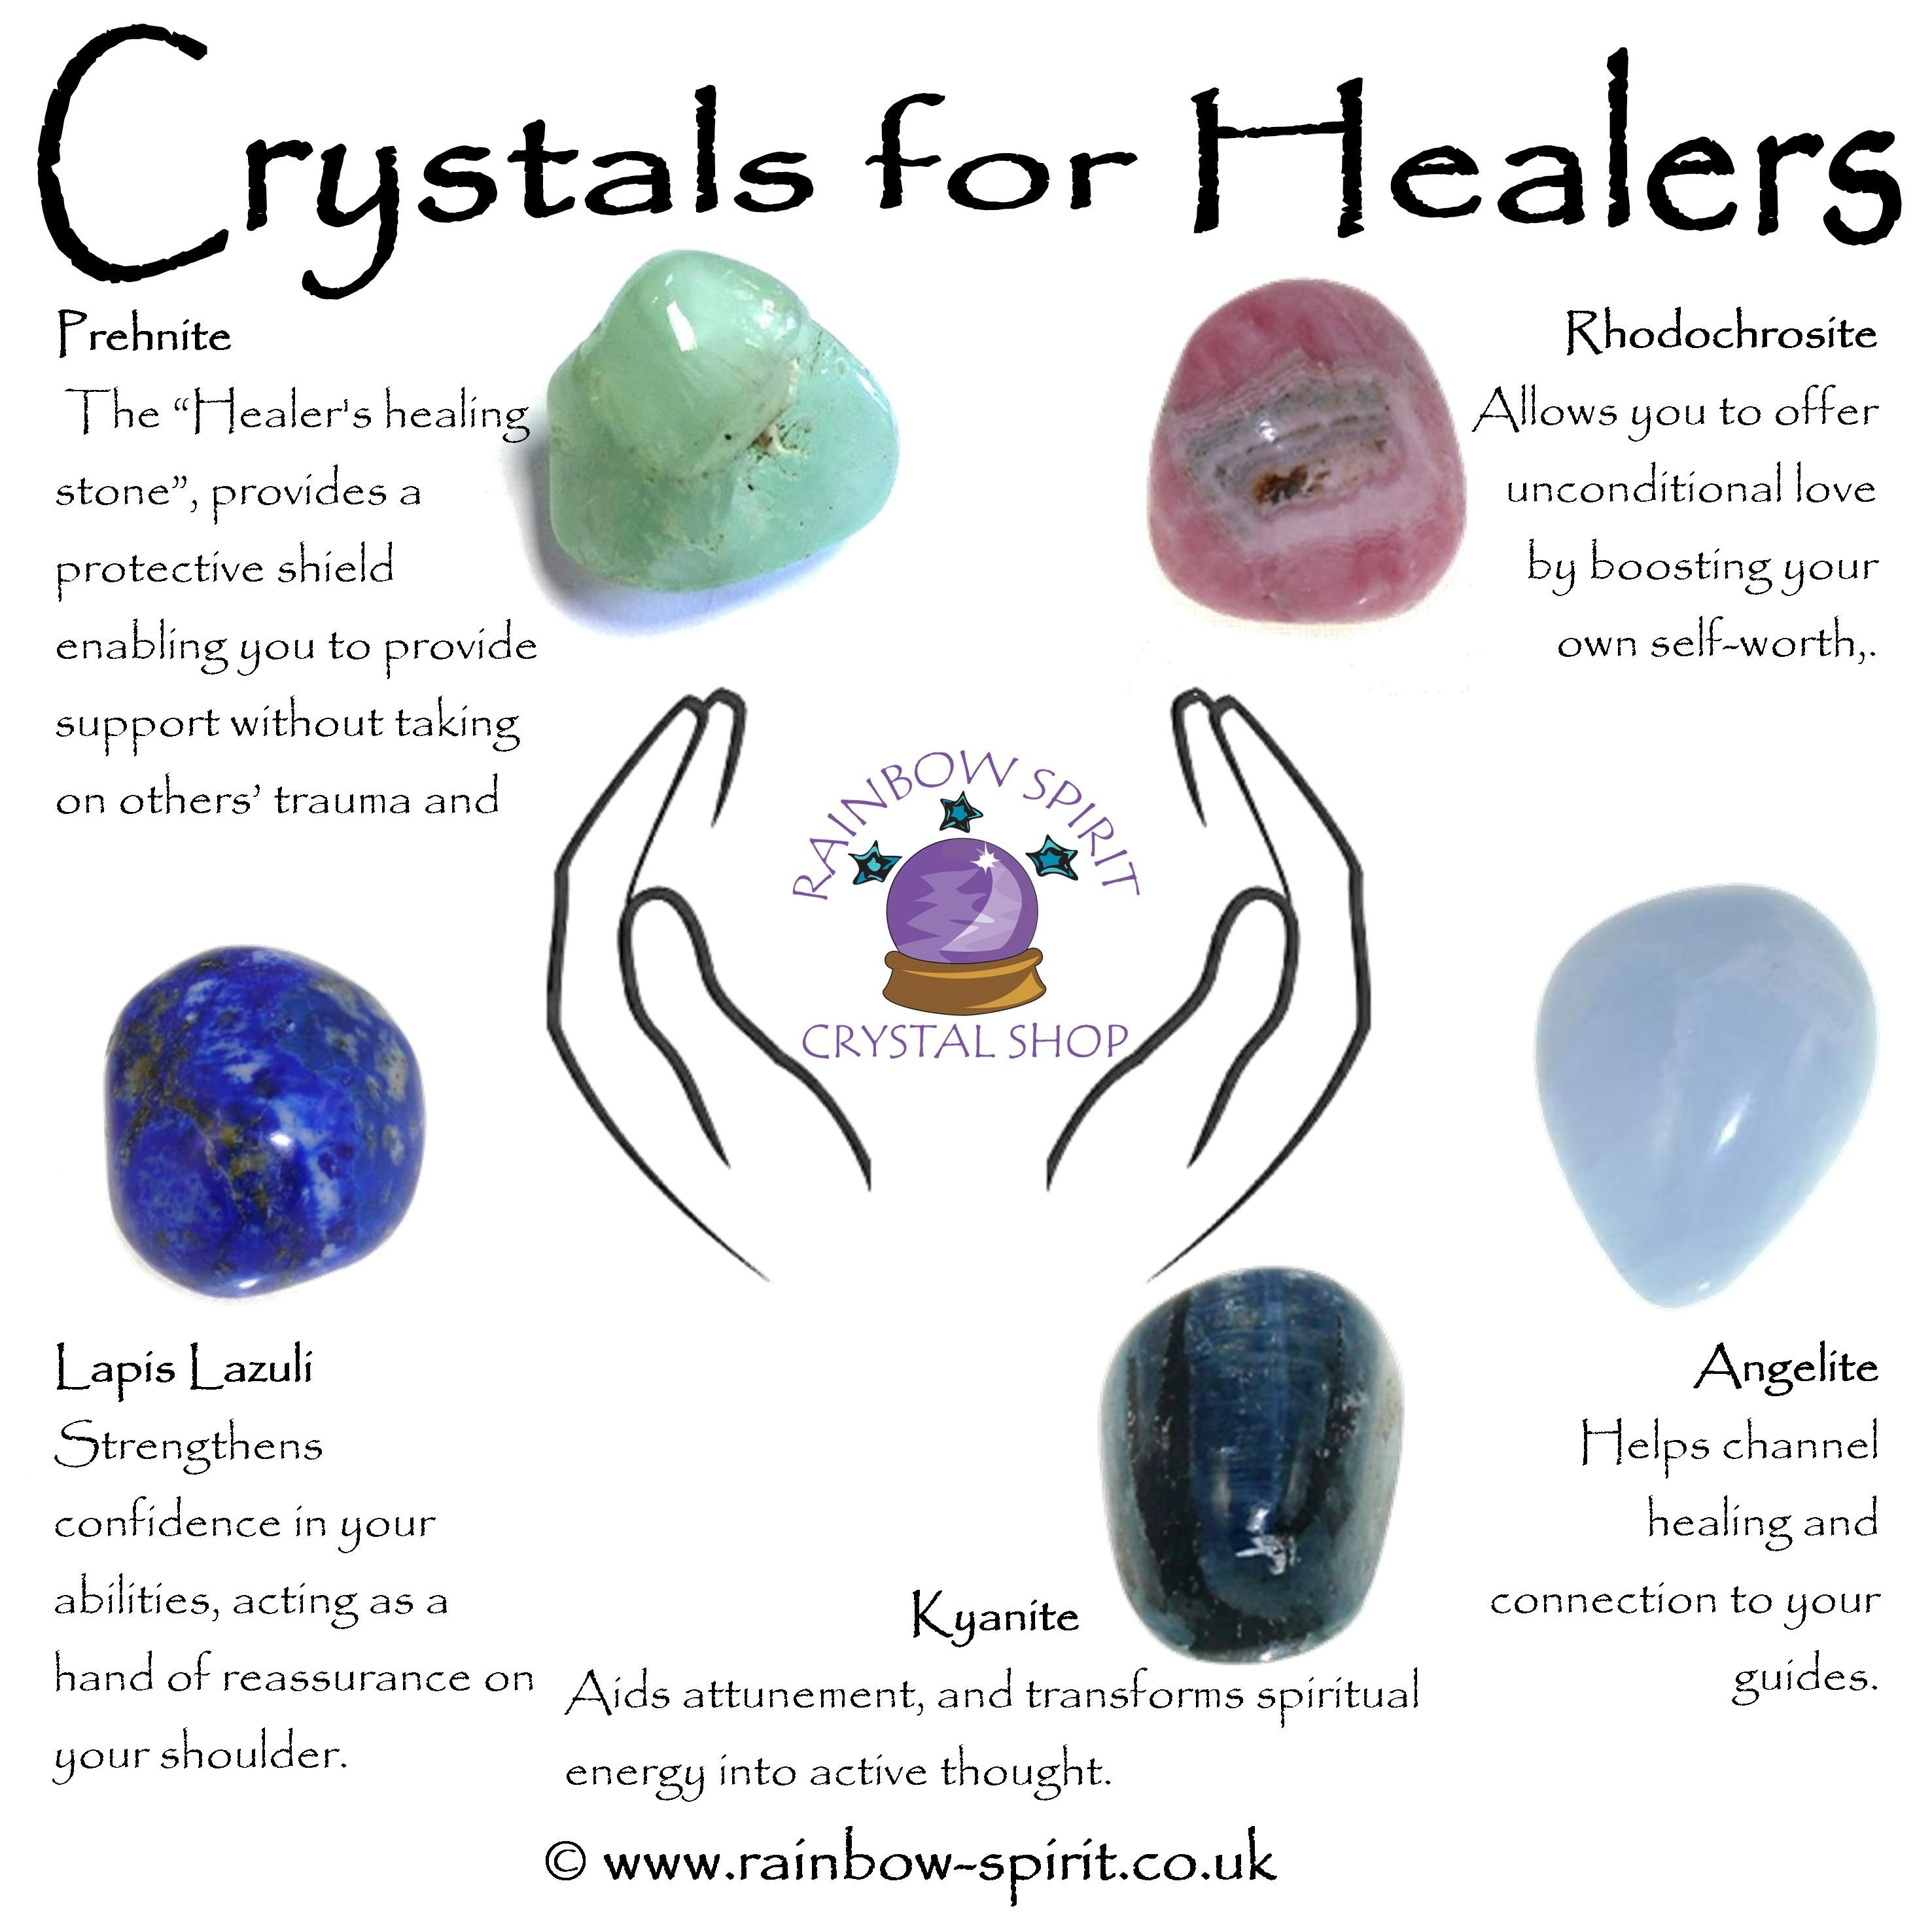 A Crystal Set Of Tumbled Stones With Healing Properties To Support Healers And Carers By Rainbow